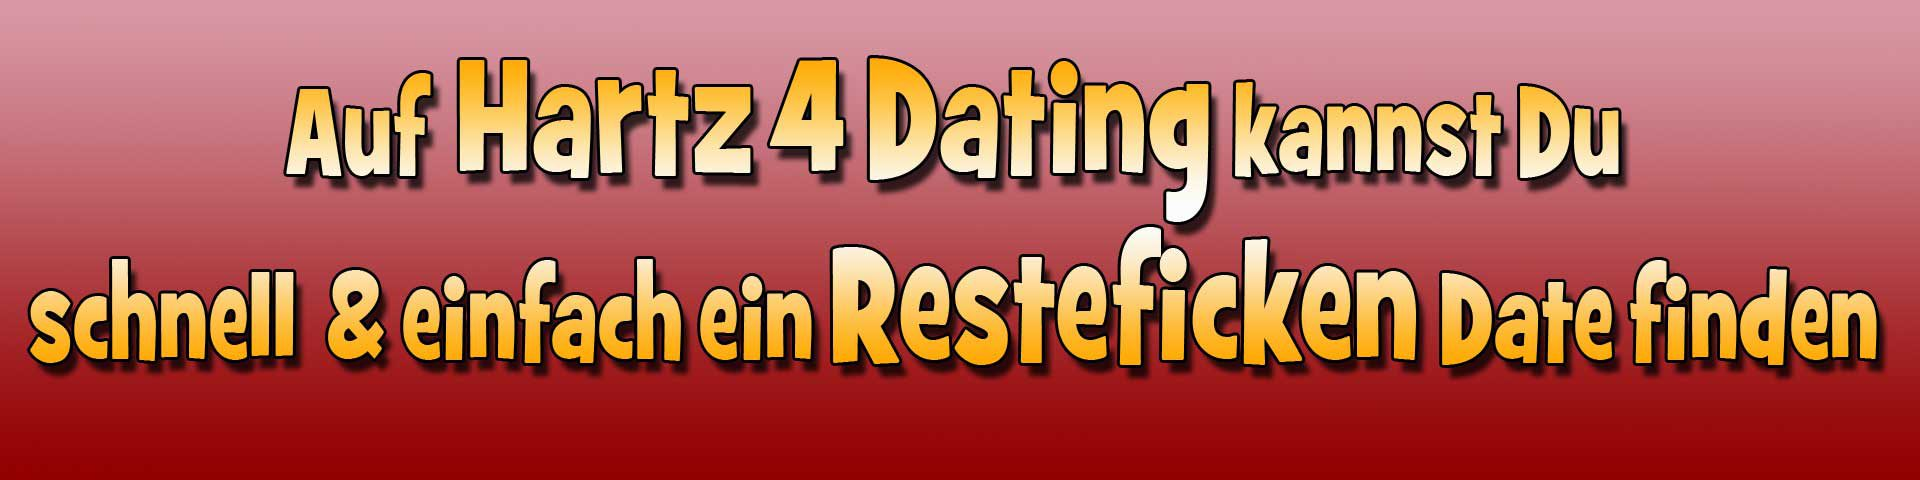 Hartz 4 Dating